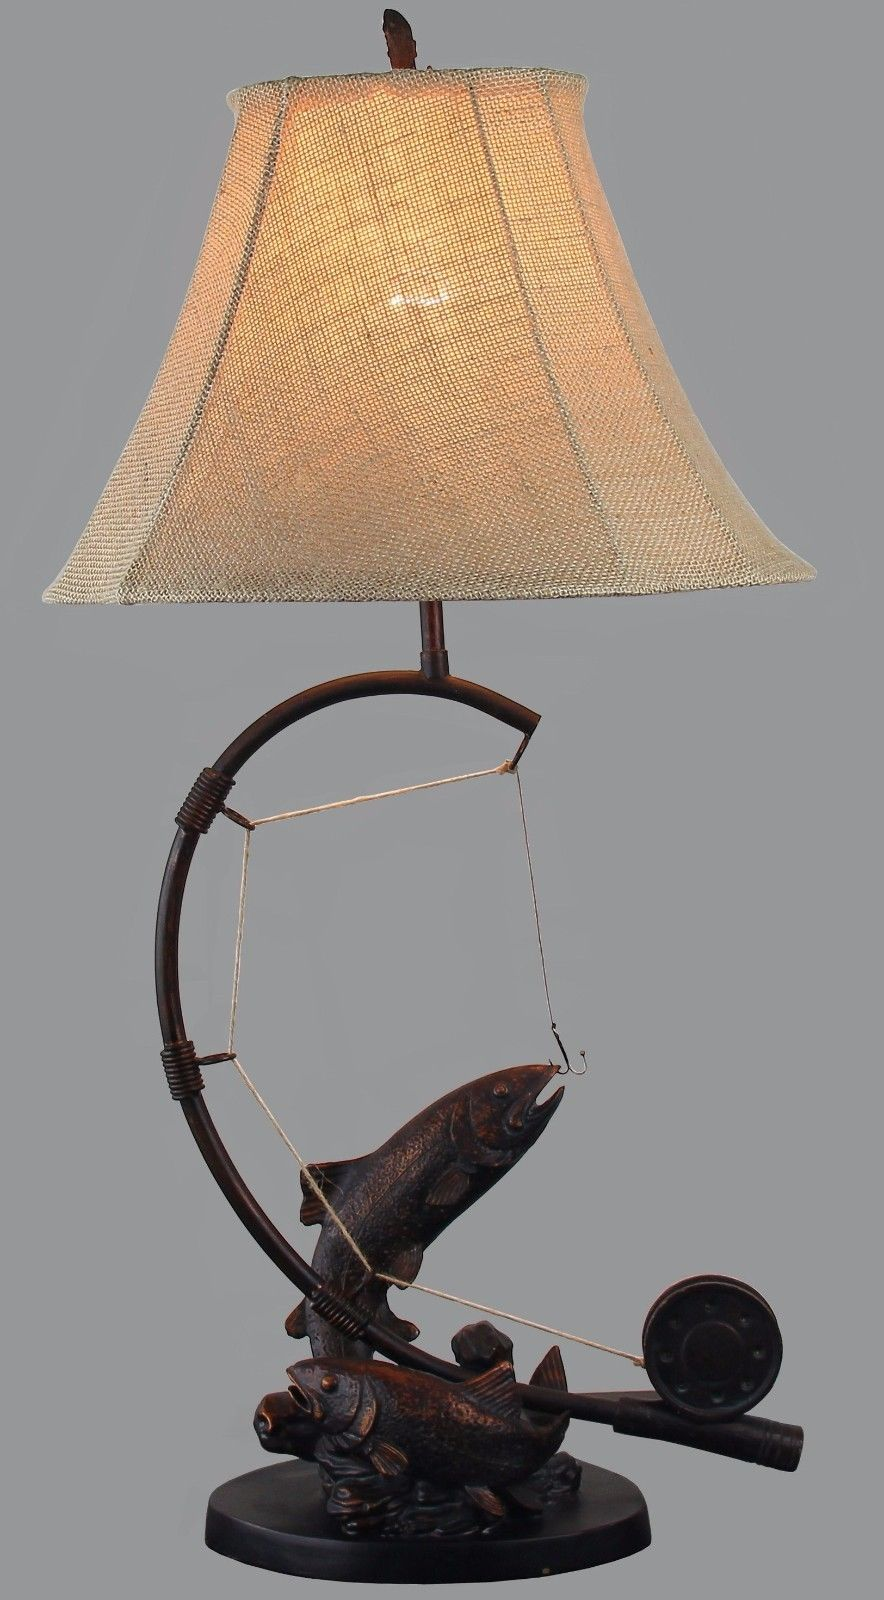 Fly Rod Trout Fish Table Lamp Fishing Rustic Cabin Lake Lodge Decor